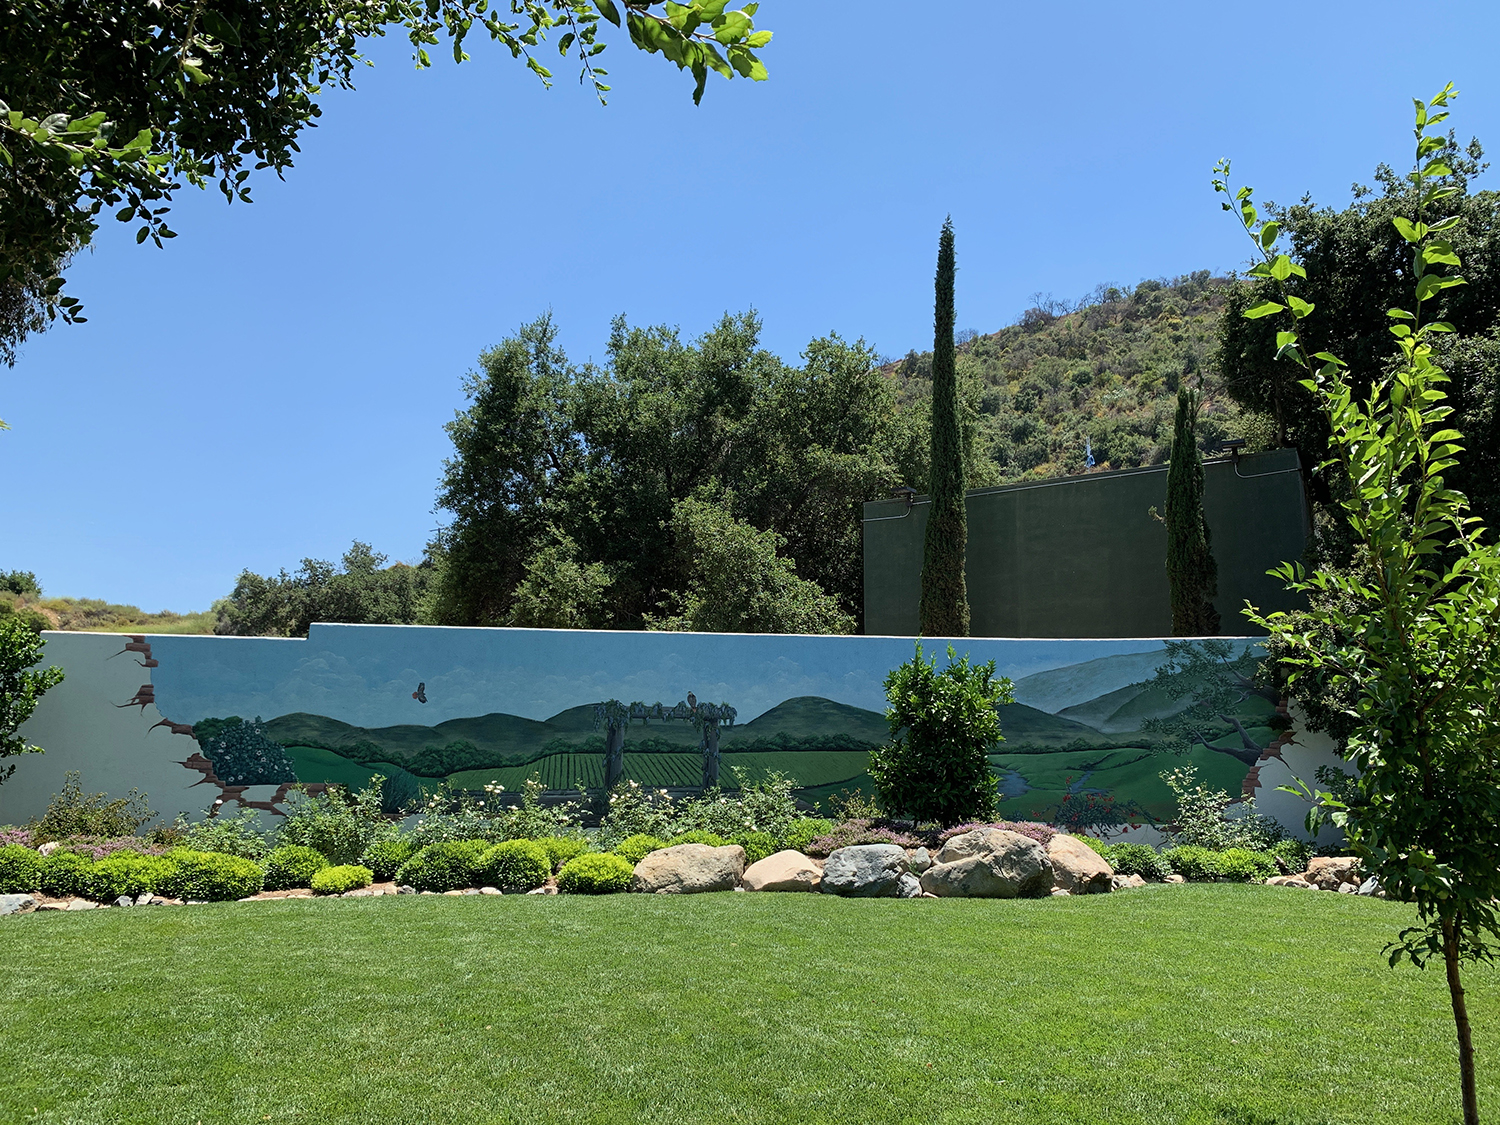 The Secret Garden offers guests a peaceful place to relax and enjoy the beauty of nature.